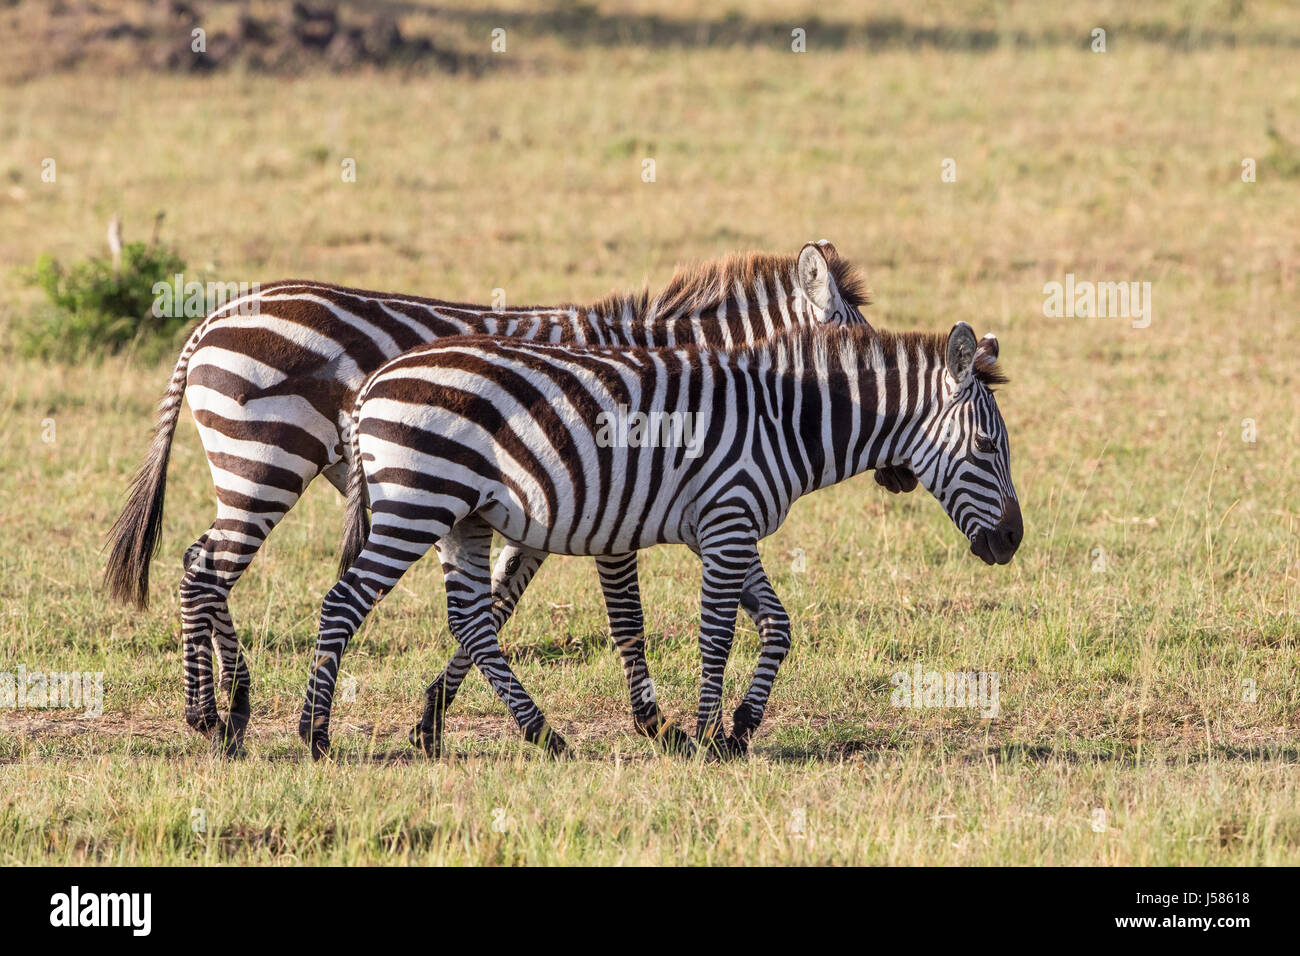 Zebras walking on the African savannah - Stock Image